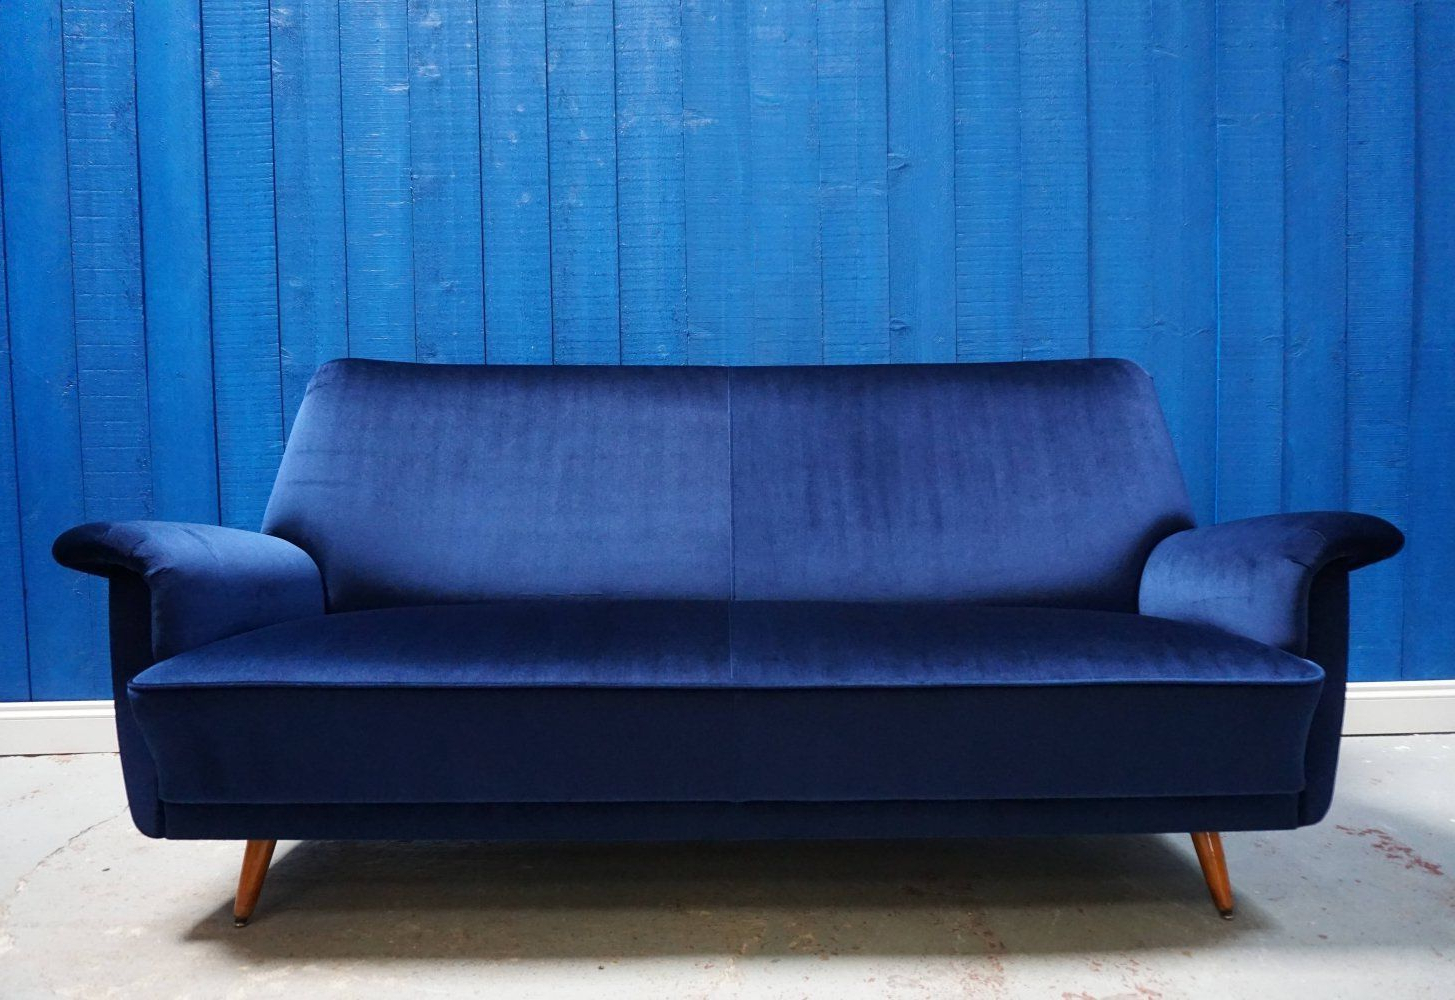 Dove Mid Century Sectional Sofas Dark Blue Throughout Current For Sale: Mid Century Danish Sofa In Luxury Navy Blue (View 16 of 20)